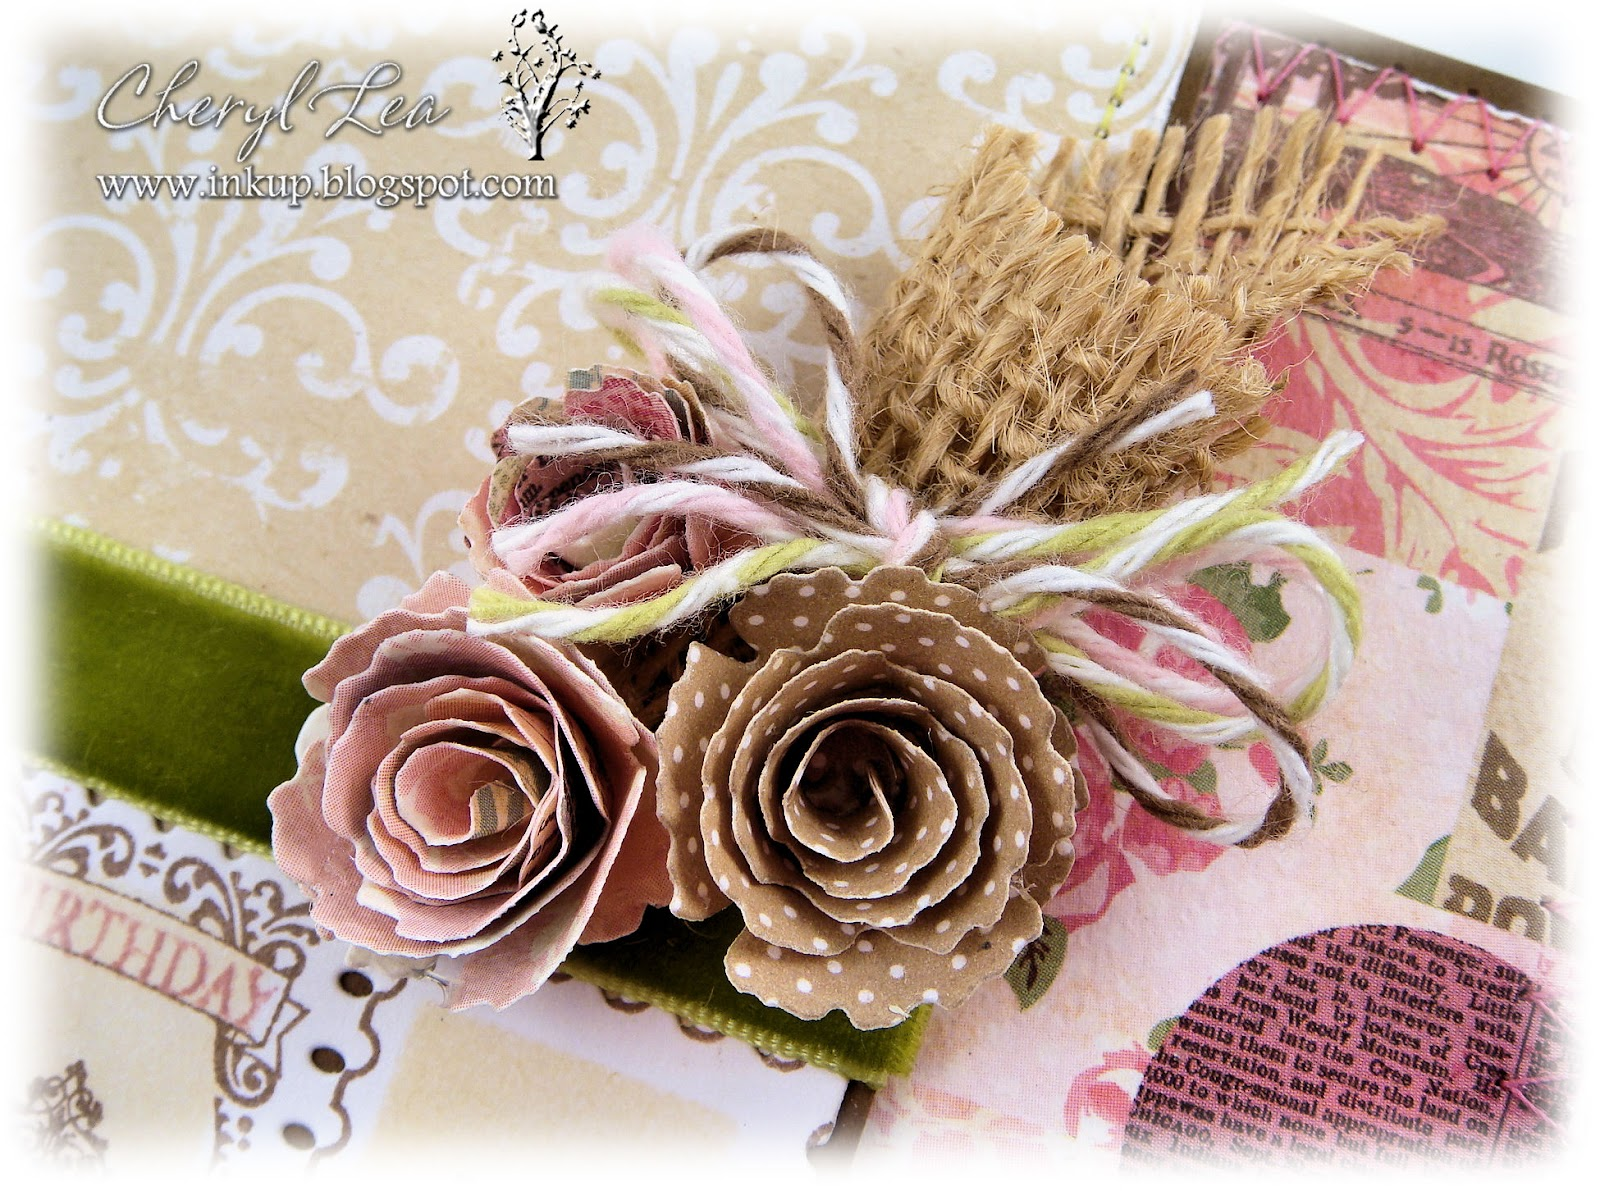 Ink up birthday wishes i used the die namics mini royal roses dies for the flowers the burlap was scrap from another project i just rolled it into a cone and stapled it together izmirmasajfo Choice Image